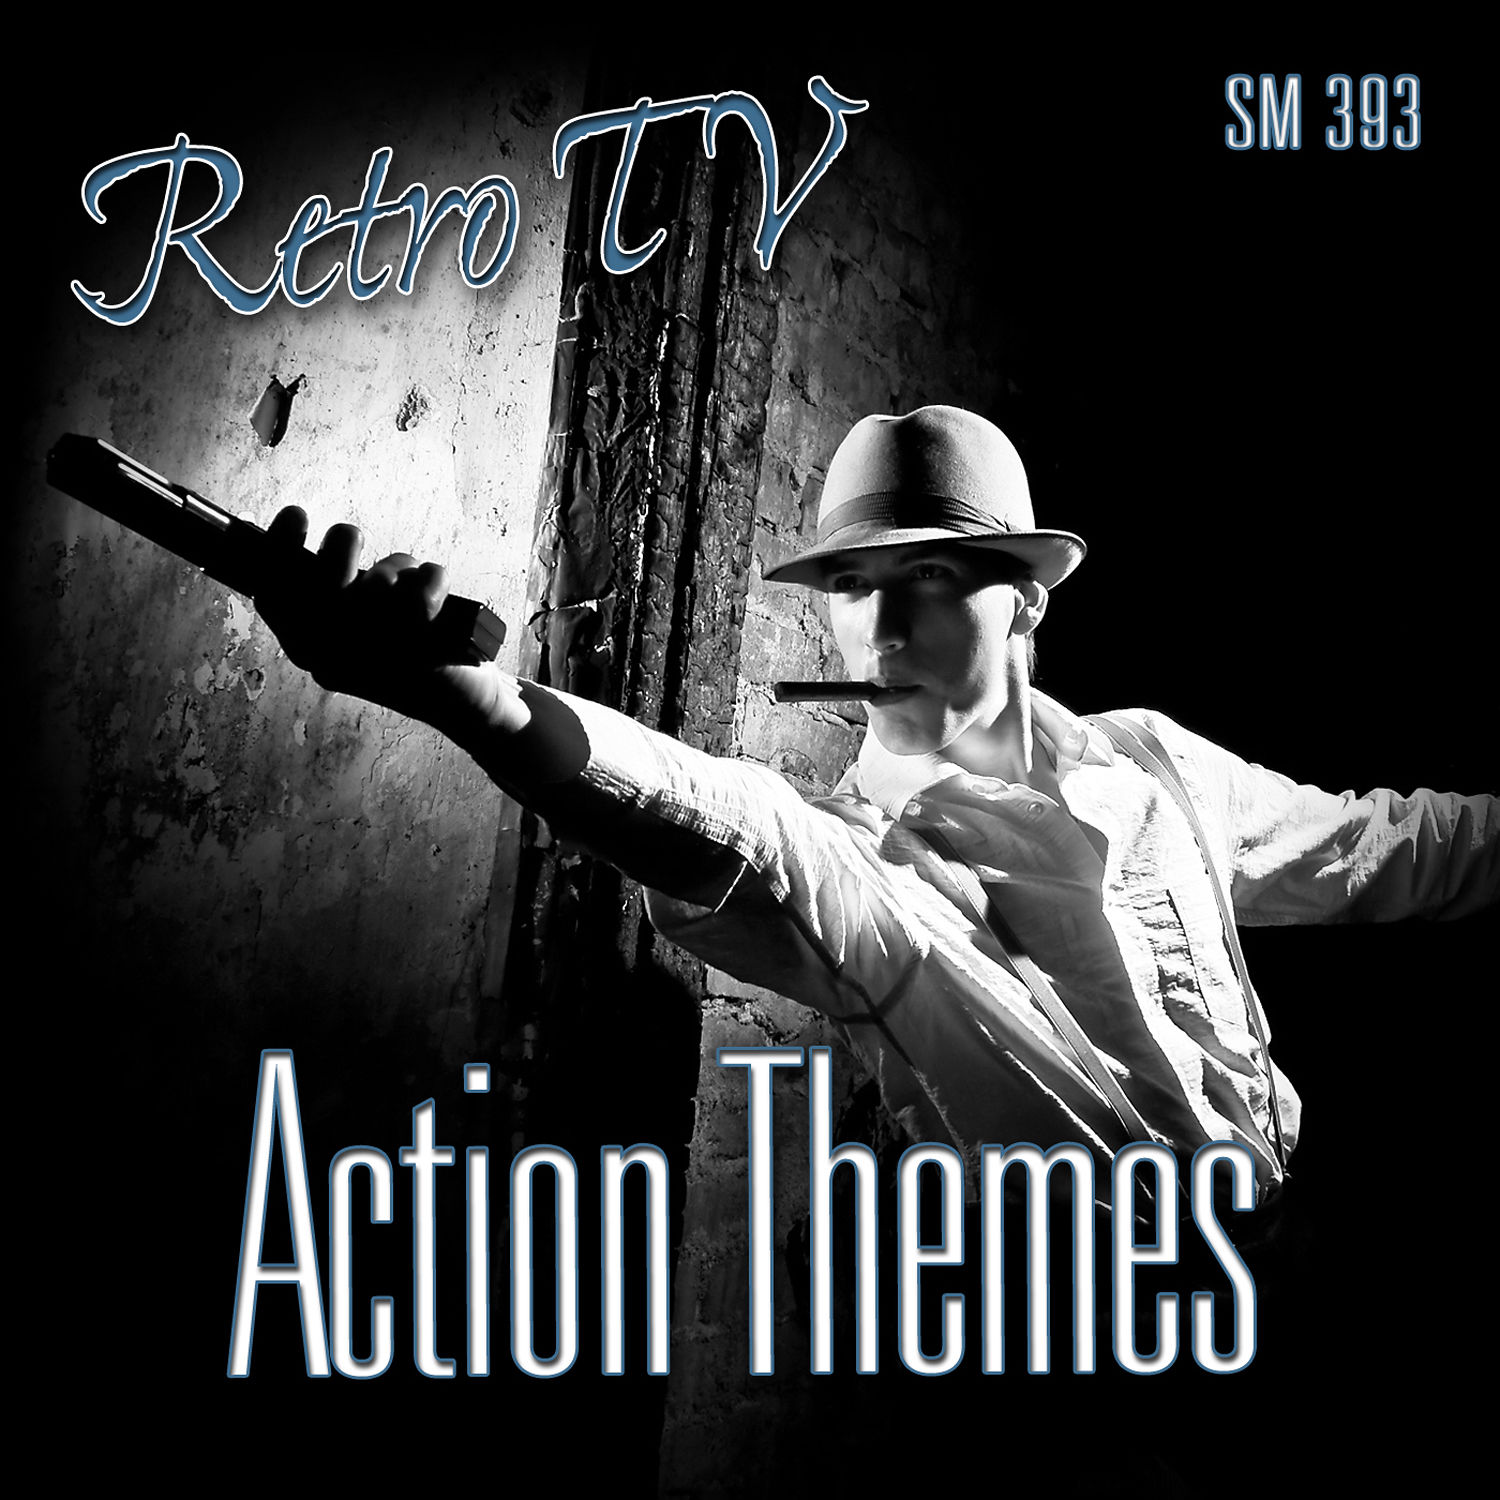 Sound Ideas Retro TV-Action Themes M-SI-RETRO TV ACTION 1648 DN